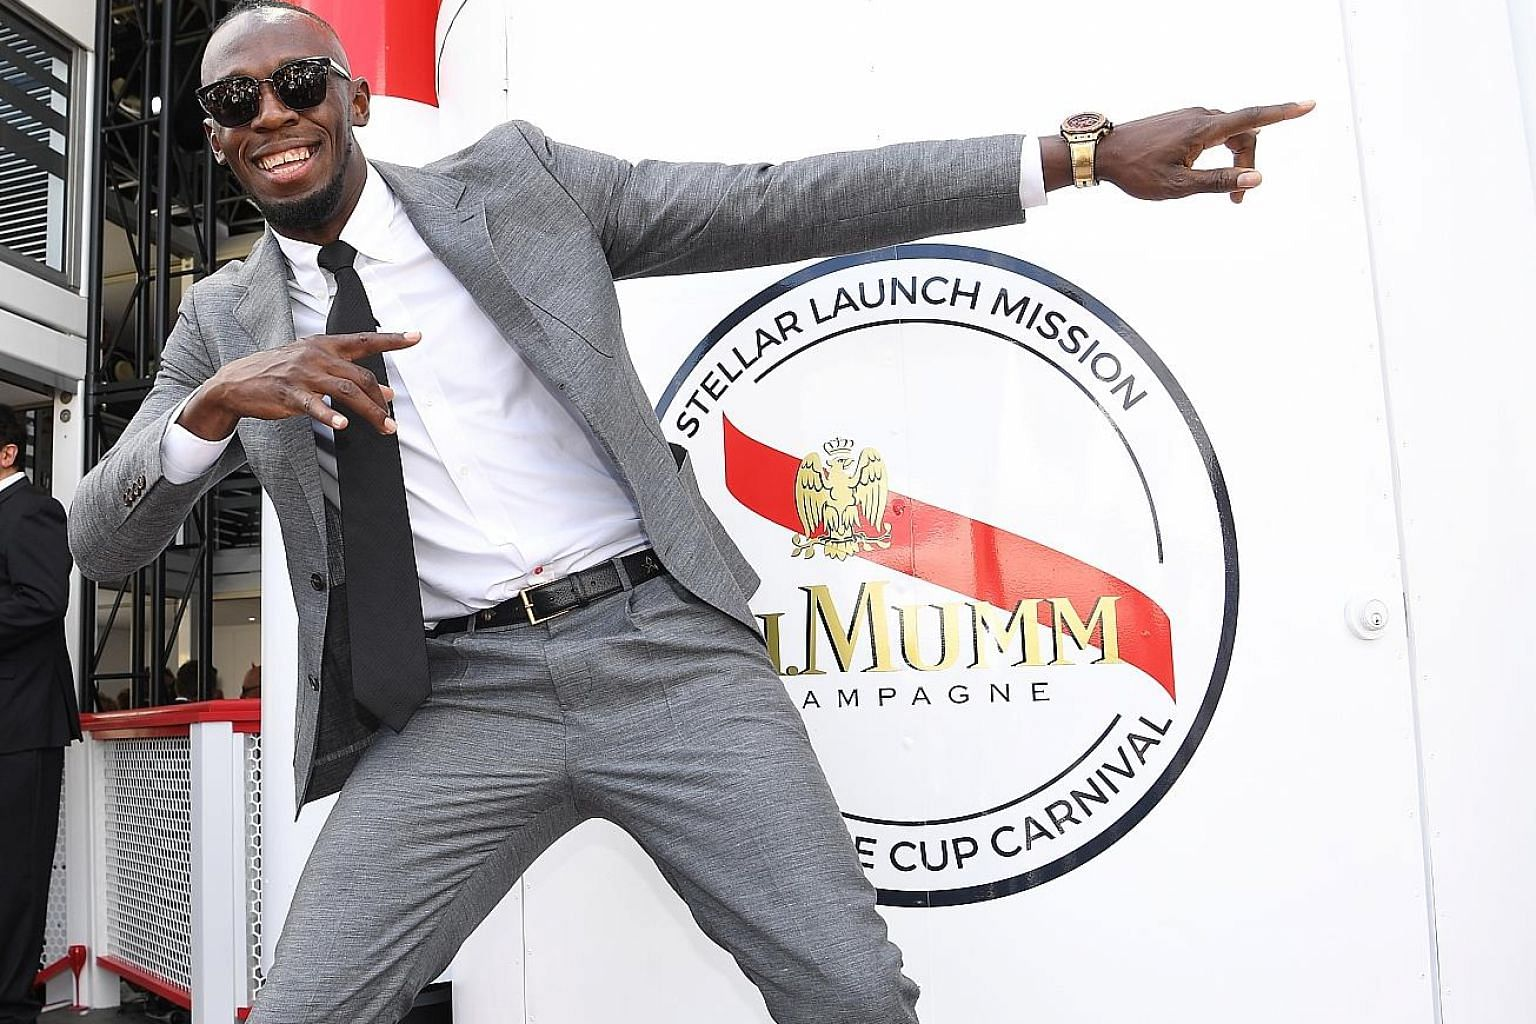 Usain Bolt striking a familiar pose at the Mumm marquee during the Victoria Derby Day, part of the Melbourne Cup Carnival, at Flemington Racecourse yesterday.